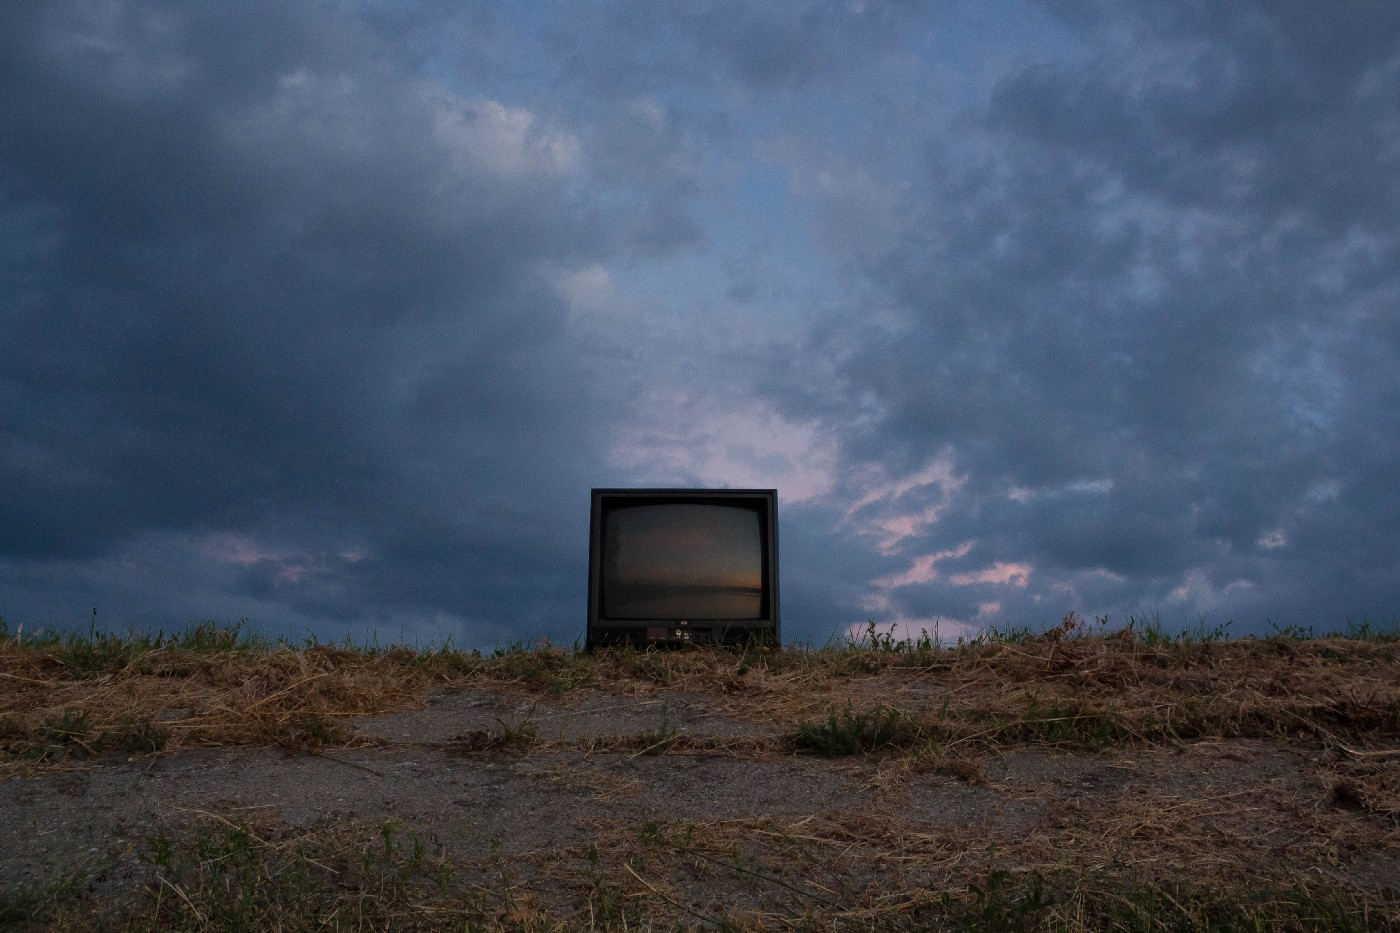 An old television left outdoors under a cloudy sky